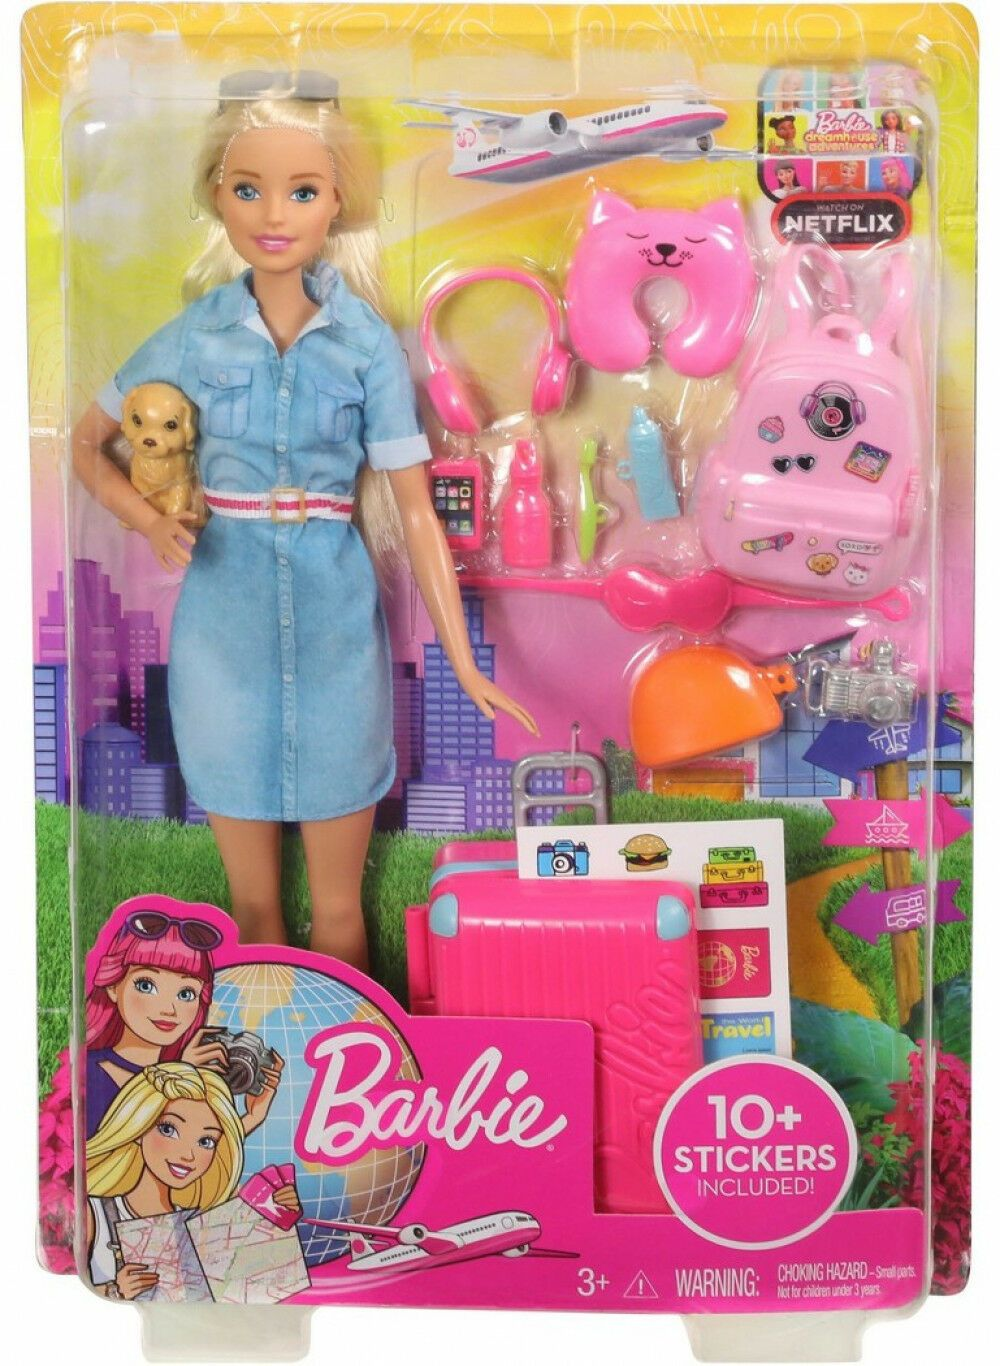 Barbie Travel Doll And Puppy Playset Kid Girl Toy Gift 887961683820 Ebay Barbie Playsets Barbie Dolls Barbie Doll Set